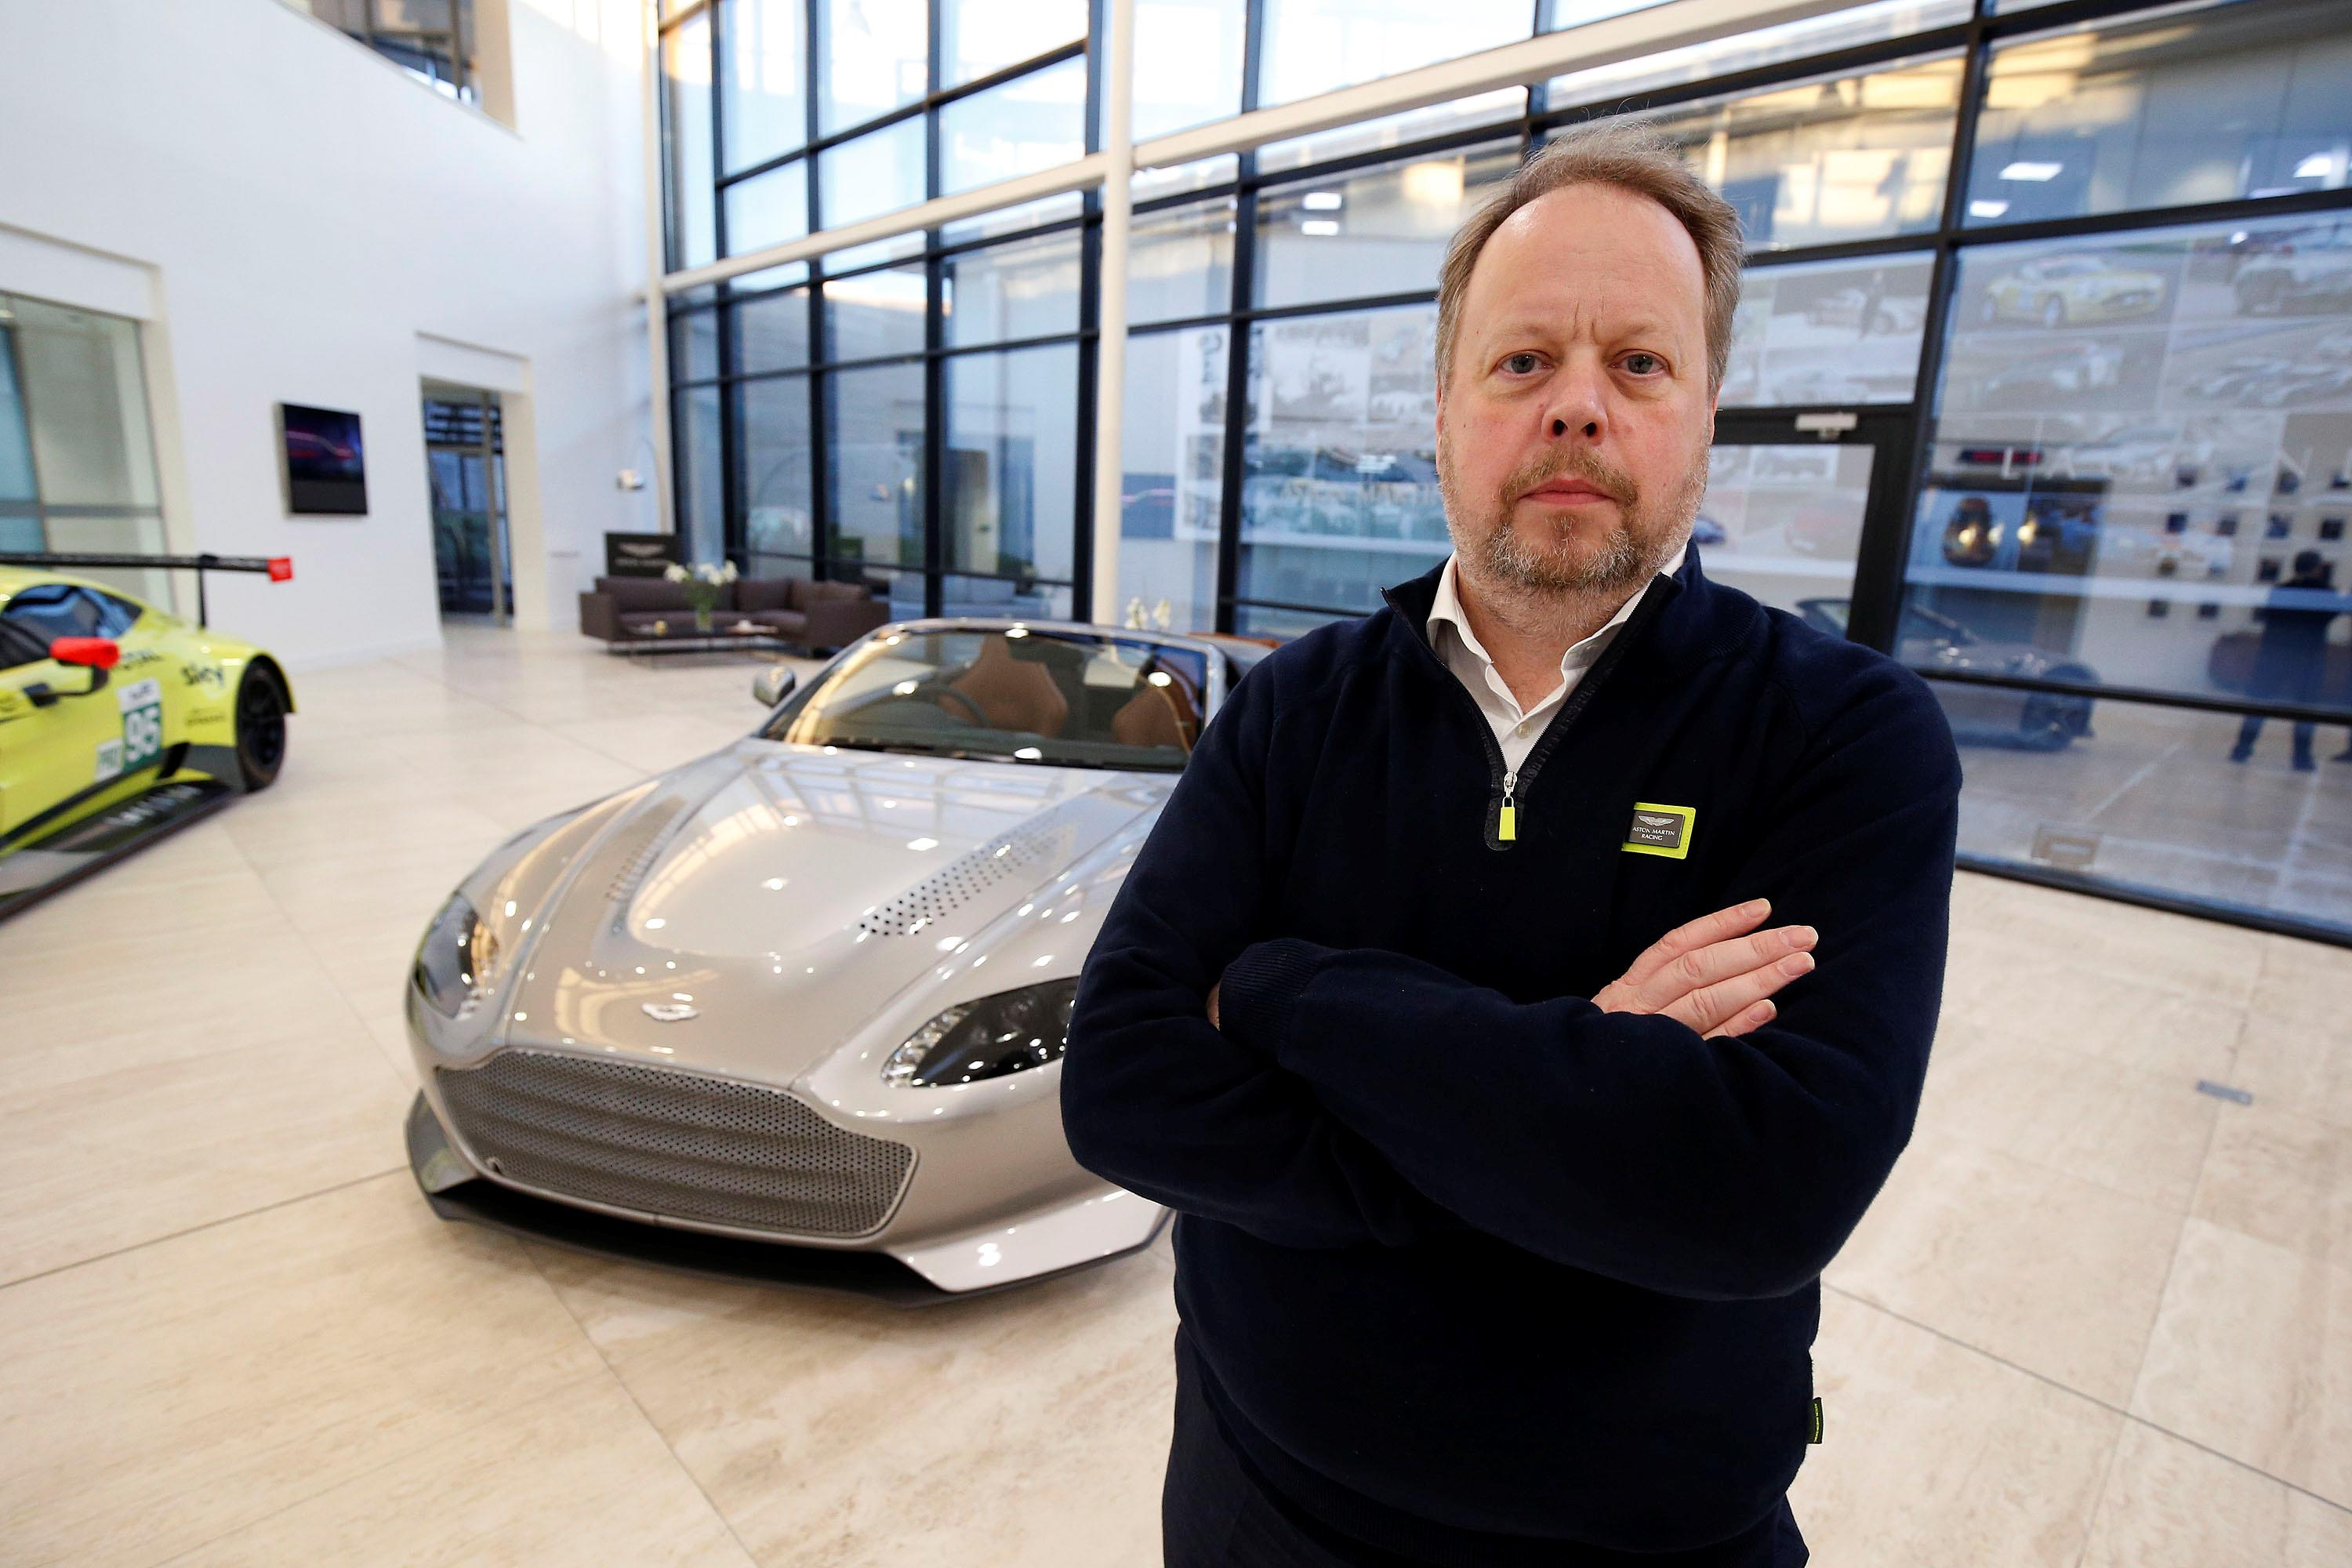 Aston Martin raises $150m to finance production of its first SUV